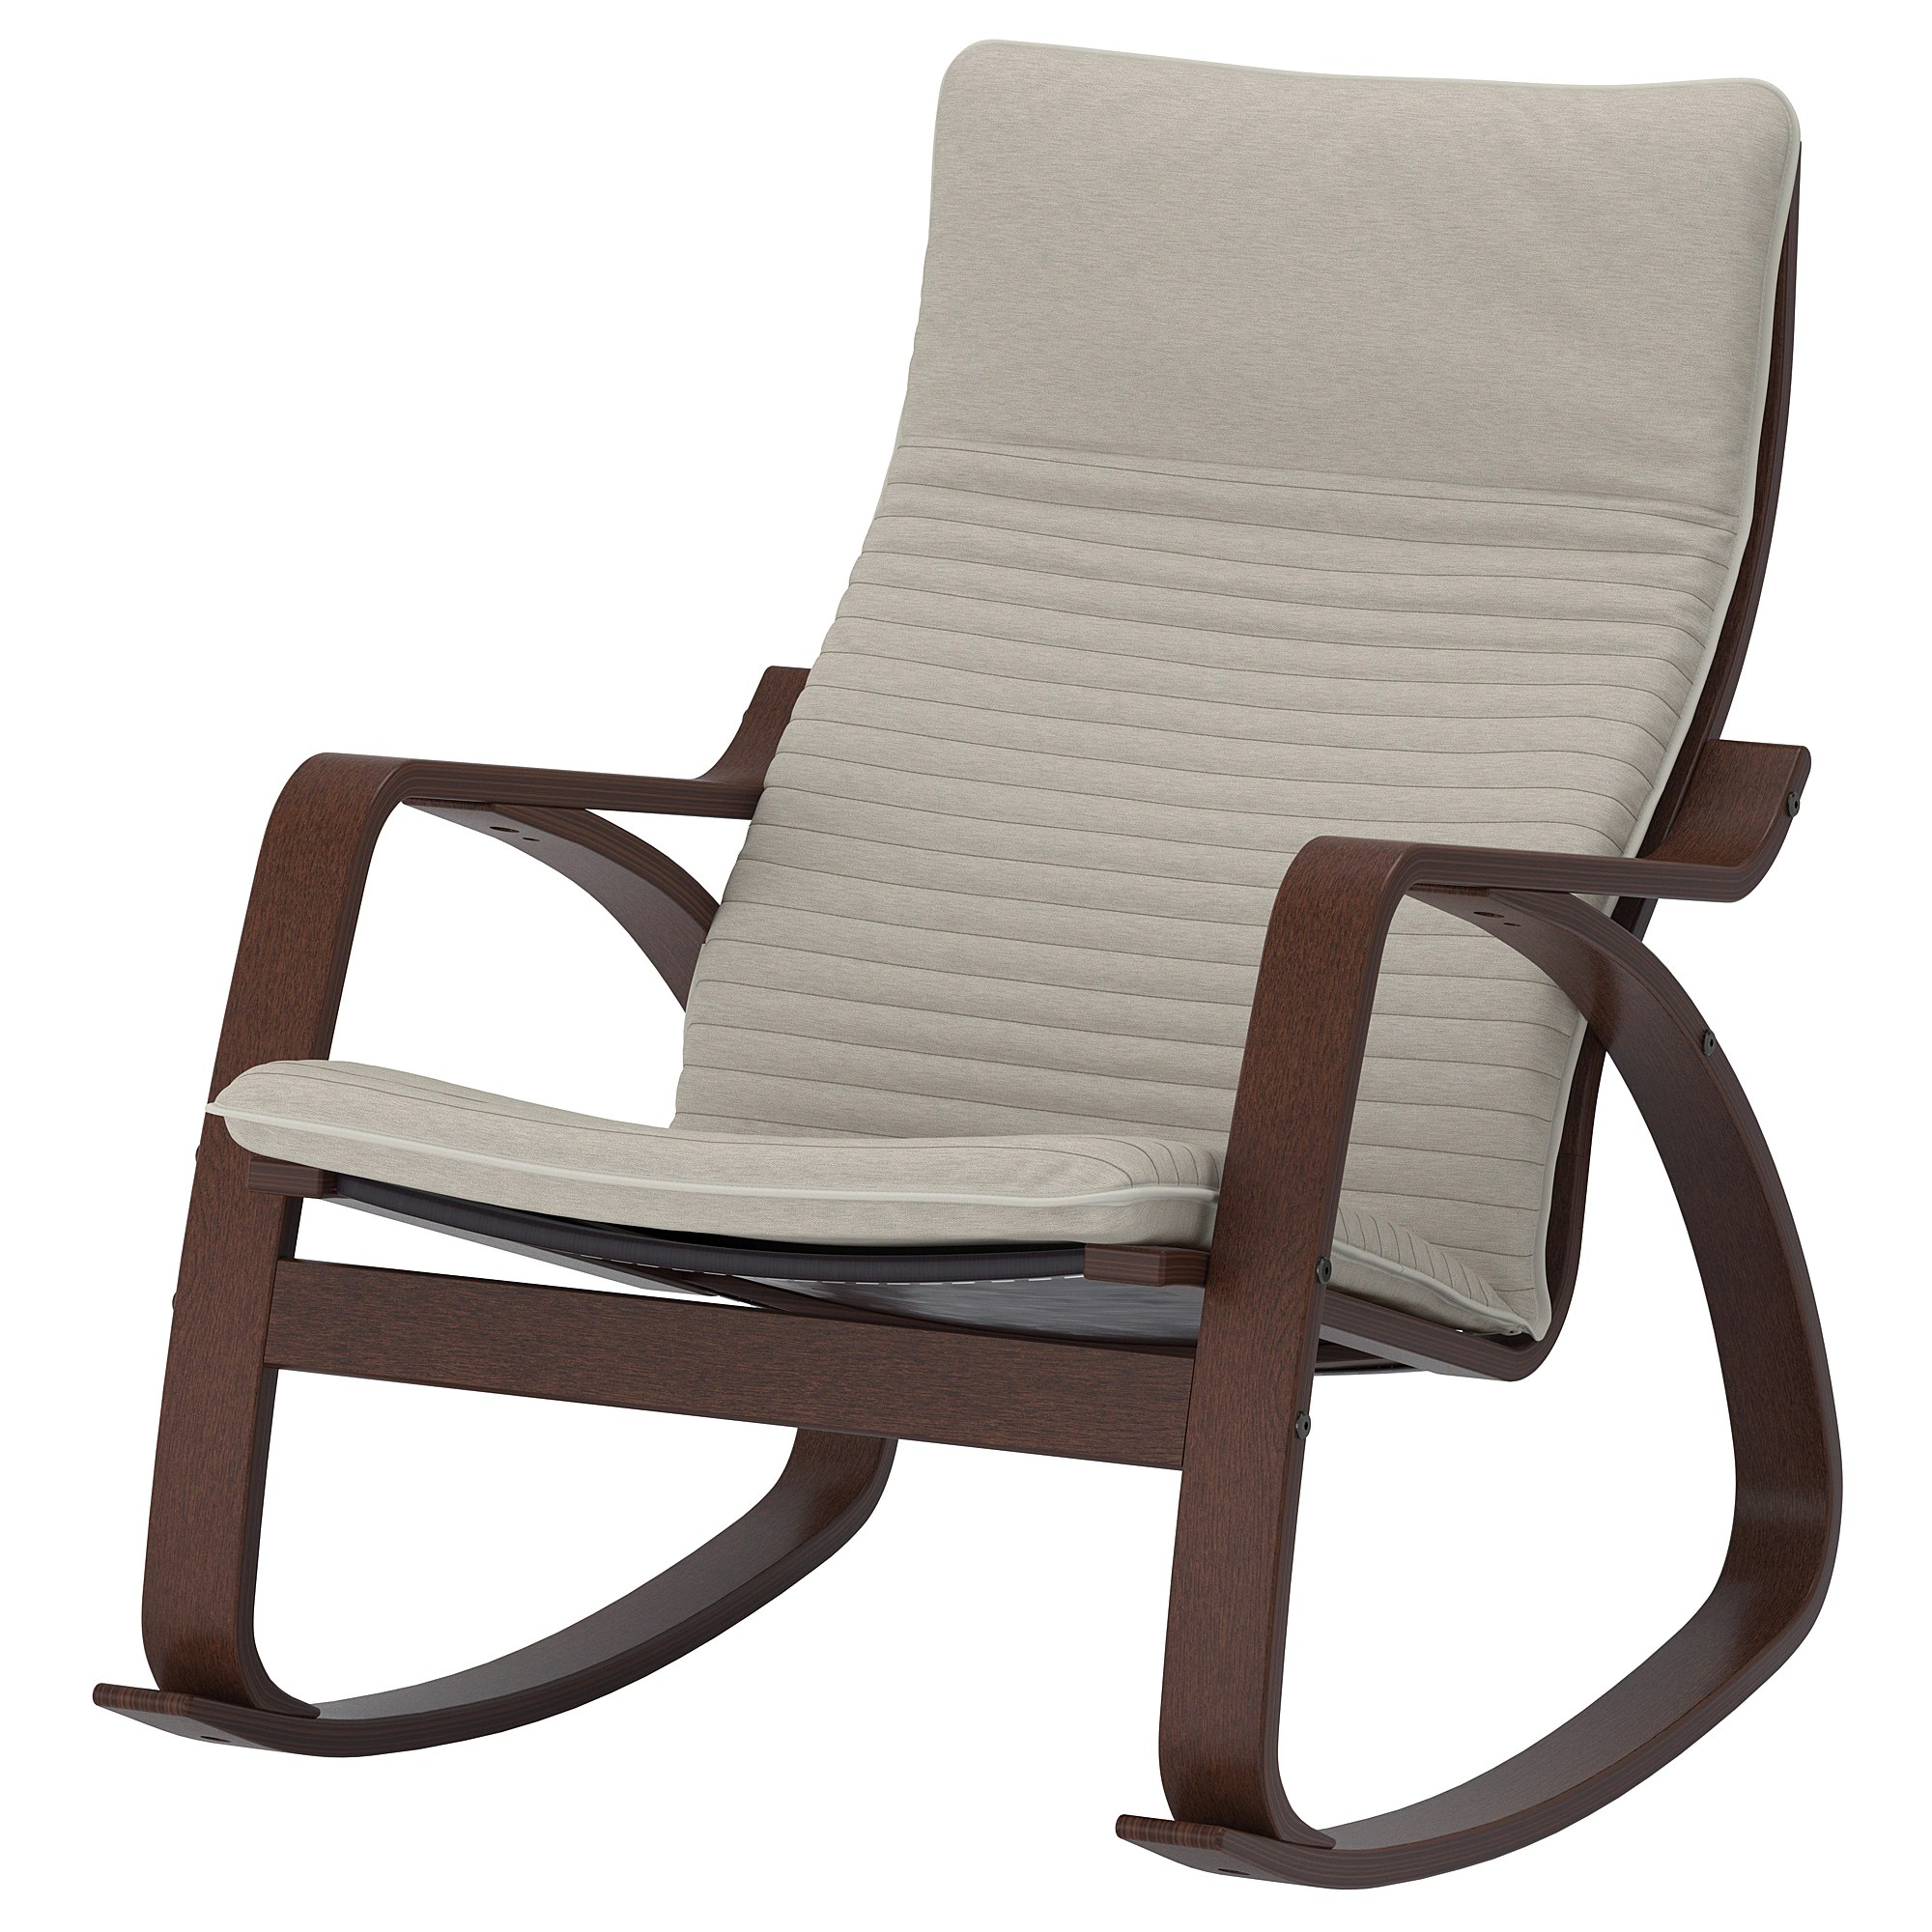 Cheap Rocking Chairs Rocking Chair PoÄng Brown Knisa Light Beige